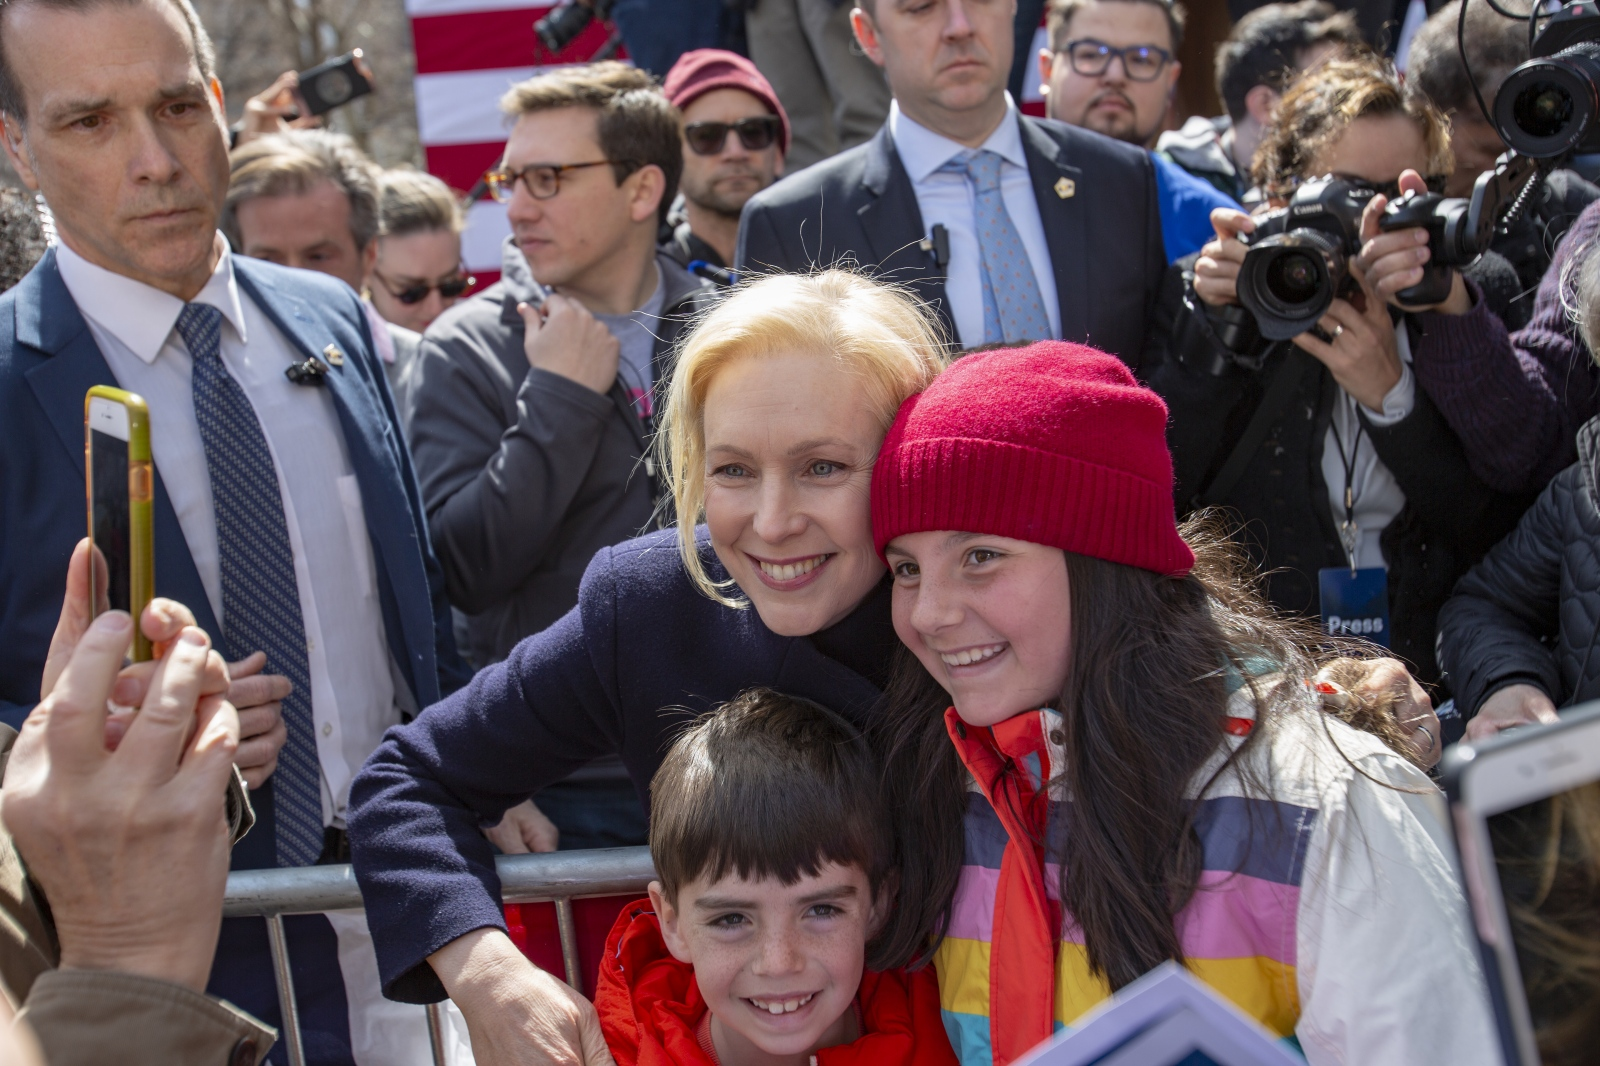 United States Senator Kirsten Gillibrand greets supporters as she kicks off event for her presidential campaign in Manhattan in front of Trump International Hotel, New York, March 24, 2019